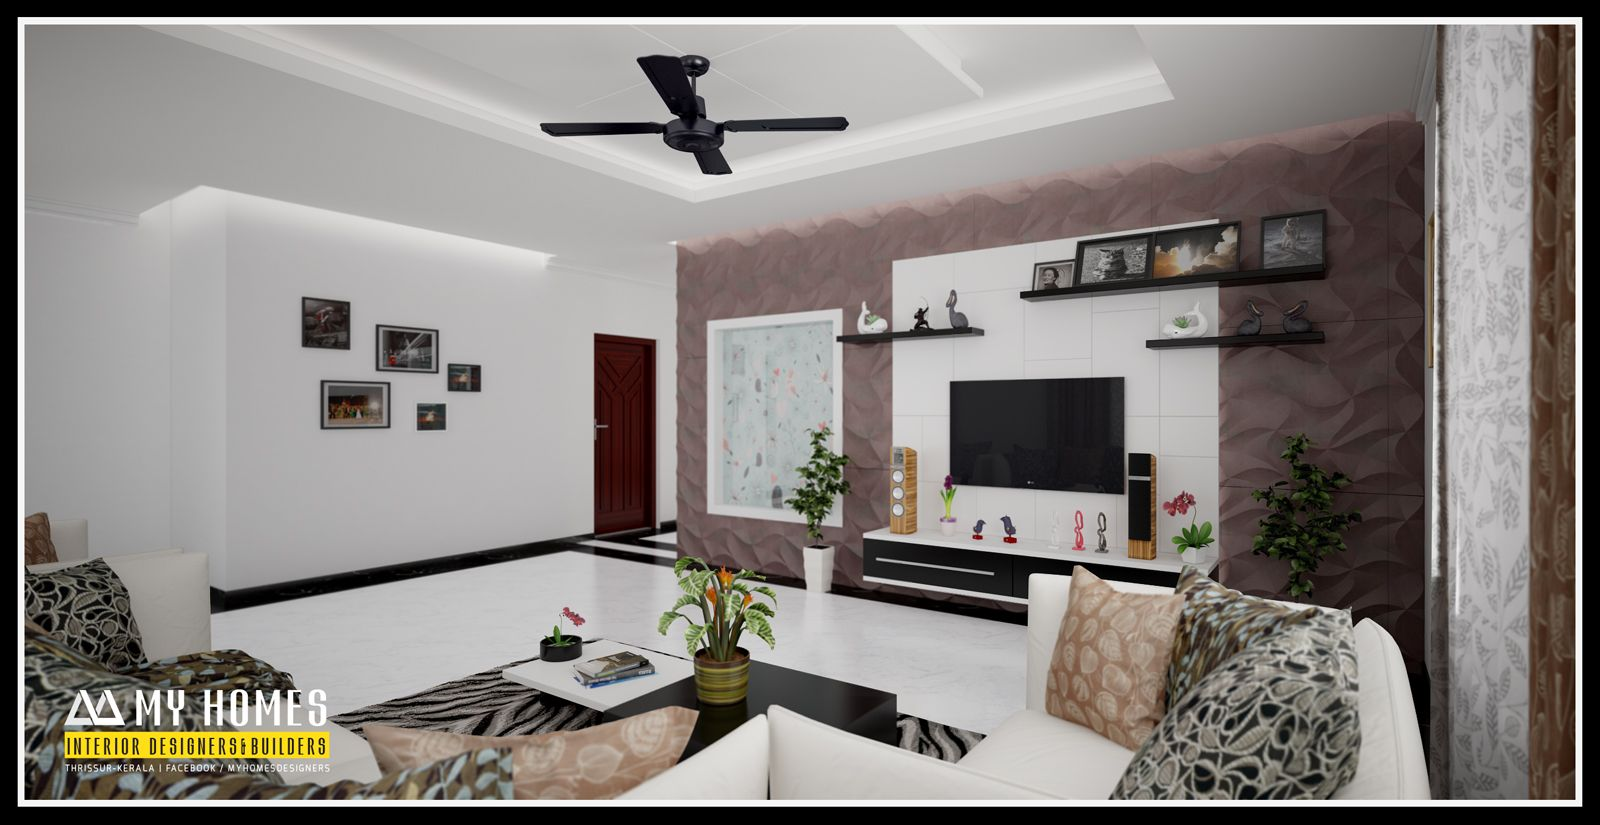 Living Room Interior Design In Kerala kerala living room designs present trendy designs for creating an